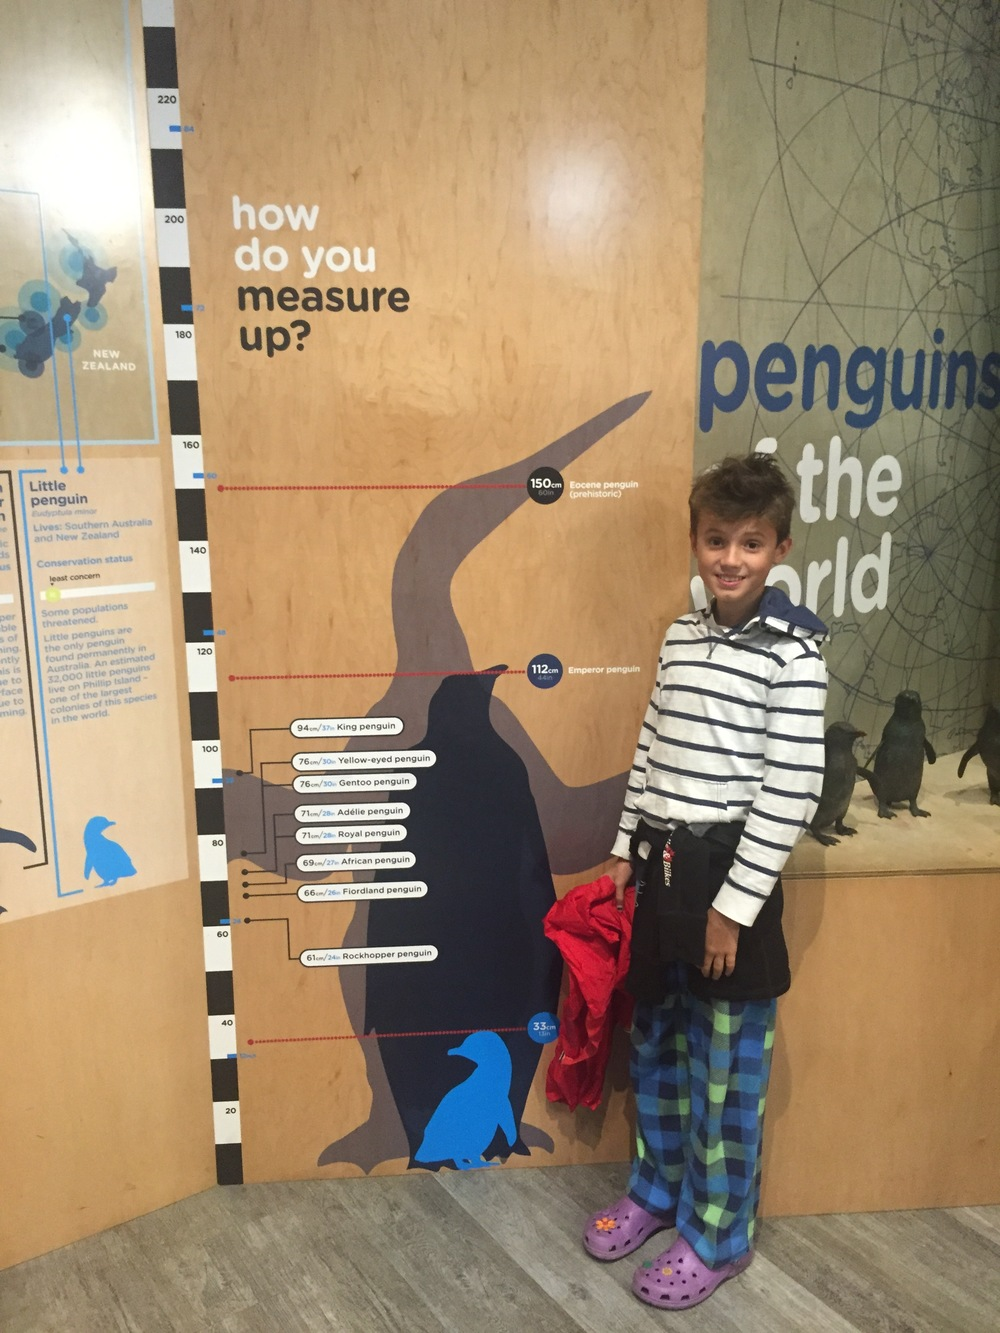 At the Penguin Parade.